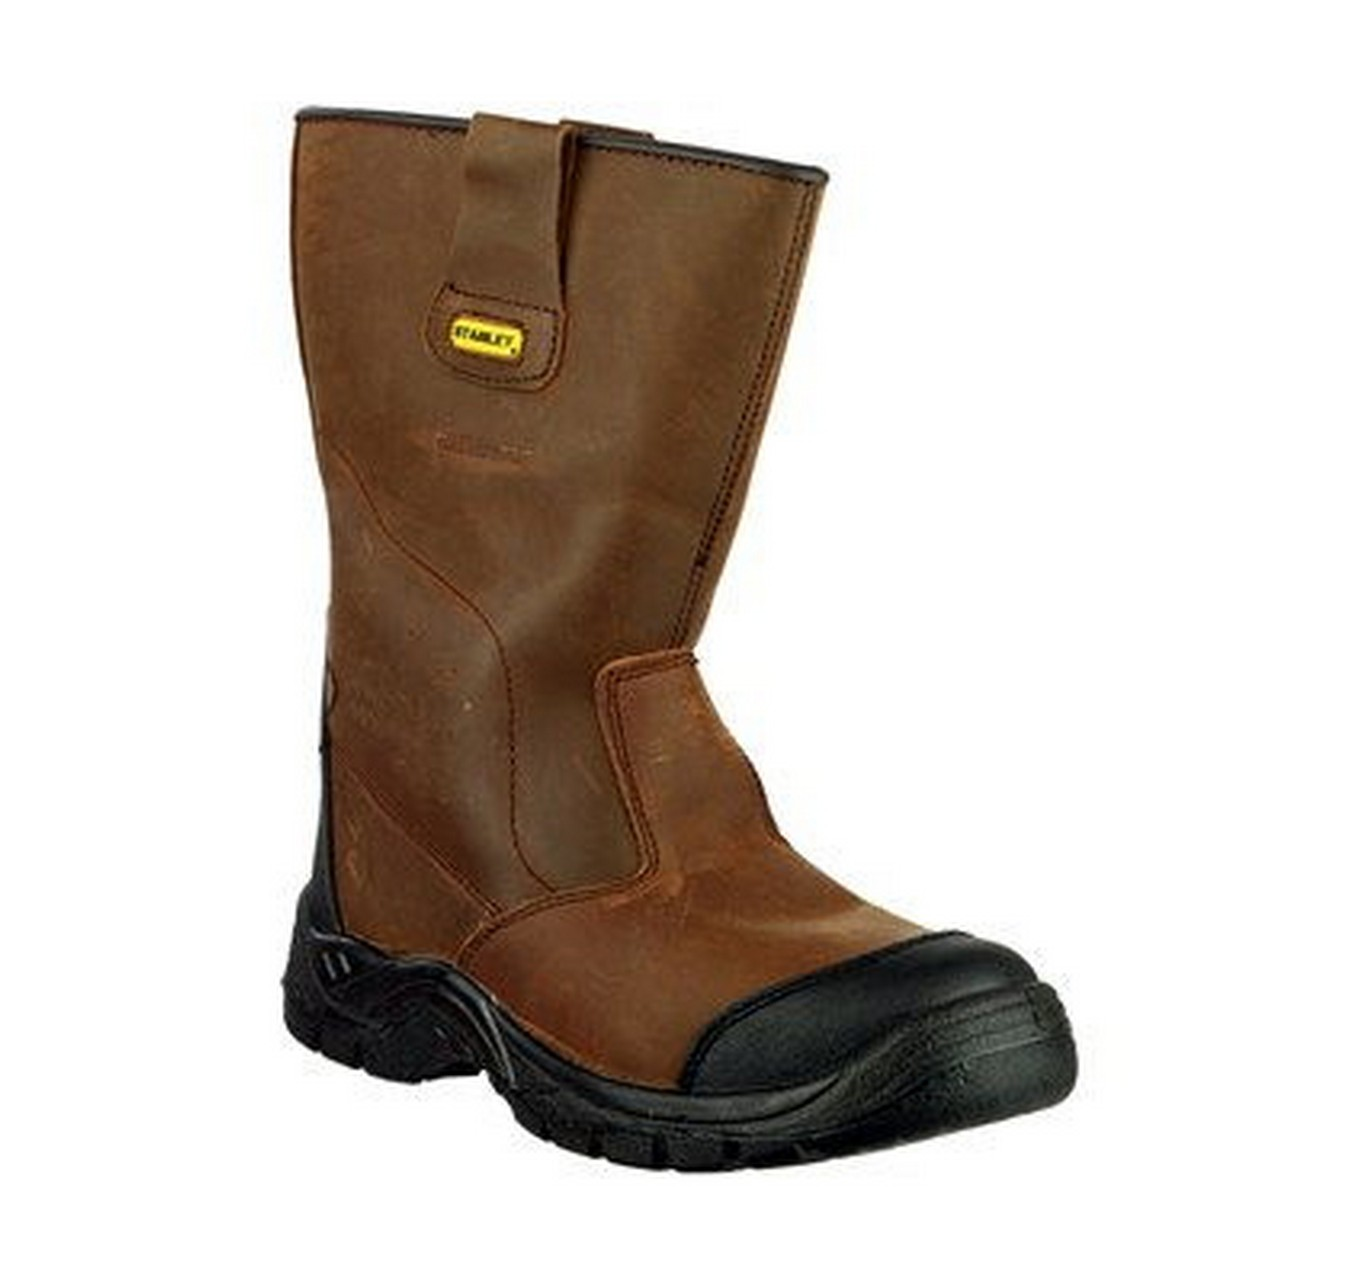 Ashland Rigger Boot Brown 12